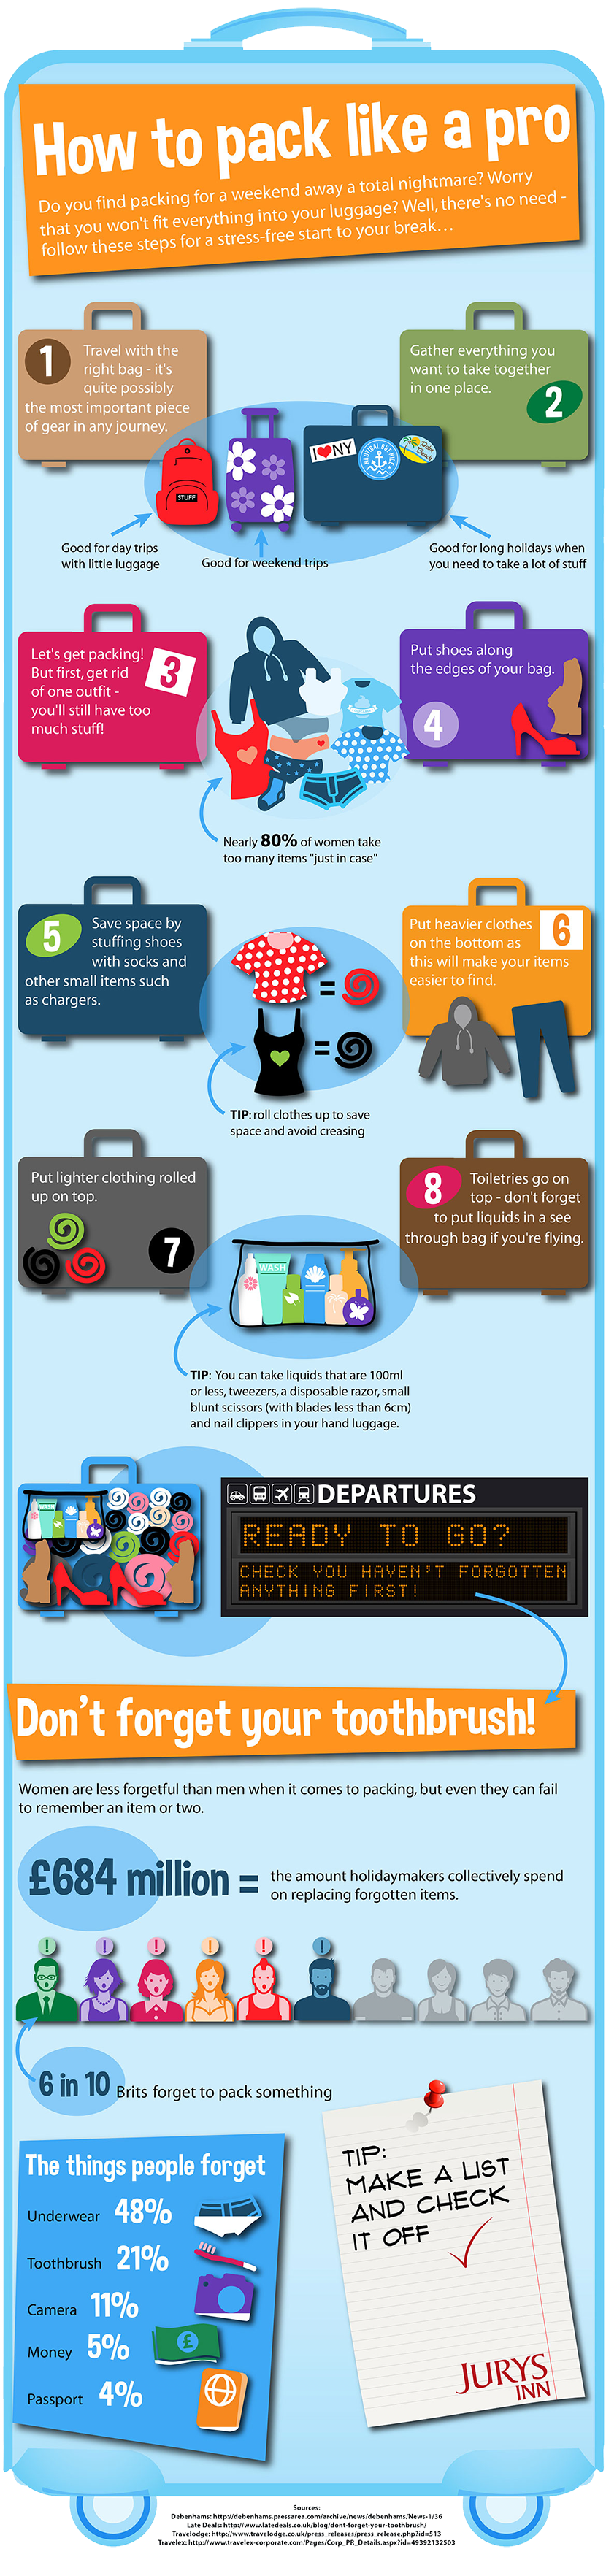 Infographic - How to pack like a pro